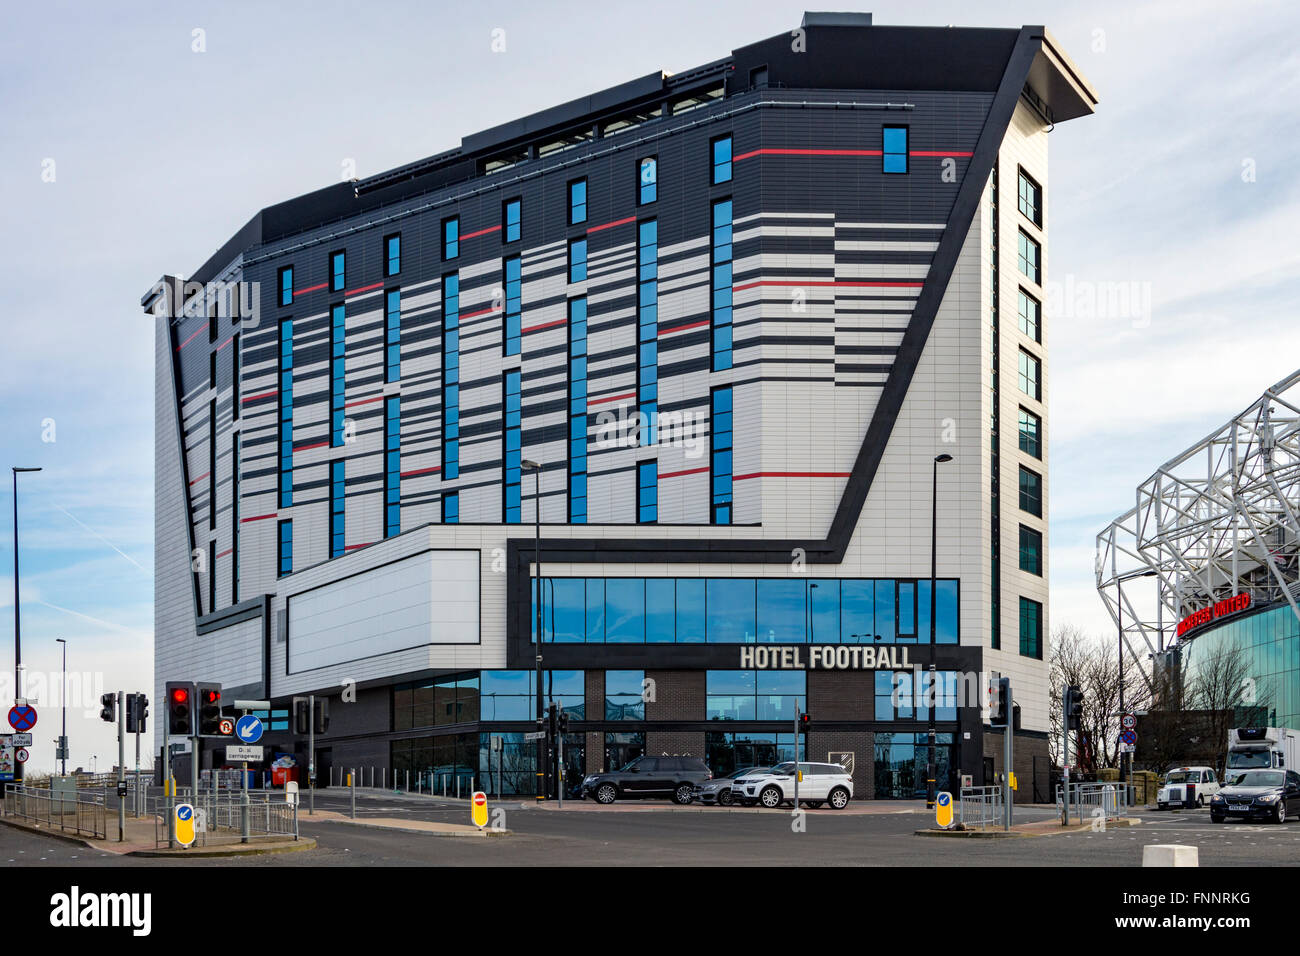 Hotel Football, Sir Matt Busby Way, Old Trafford, Manchester, England, UK - Stock Image